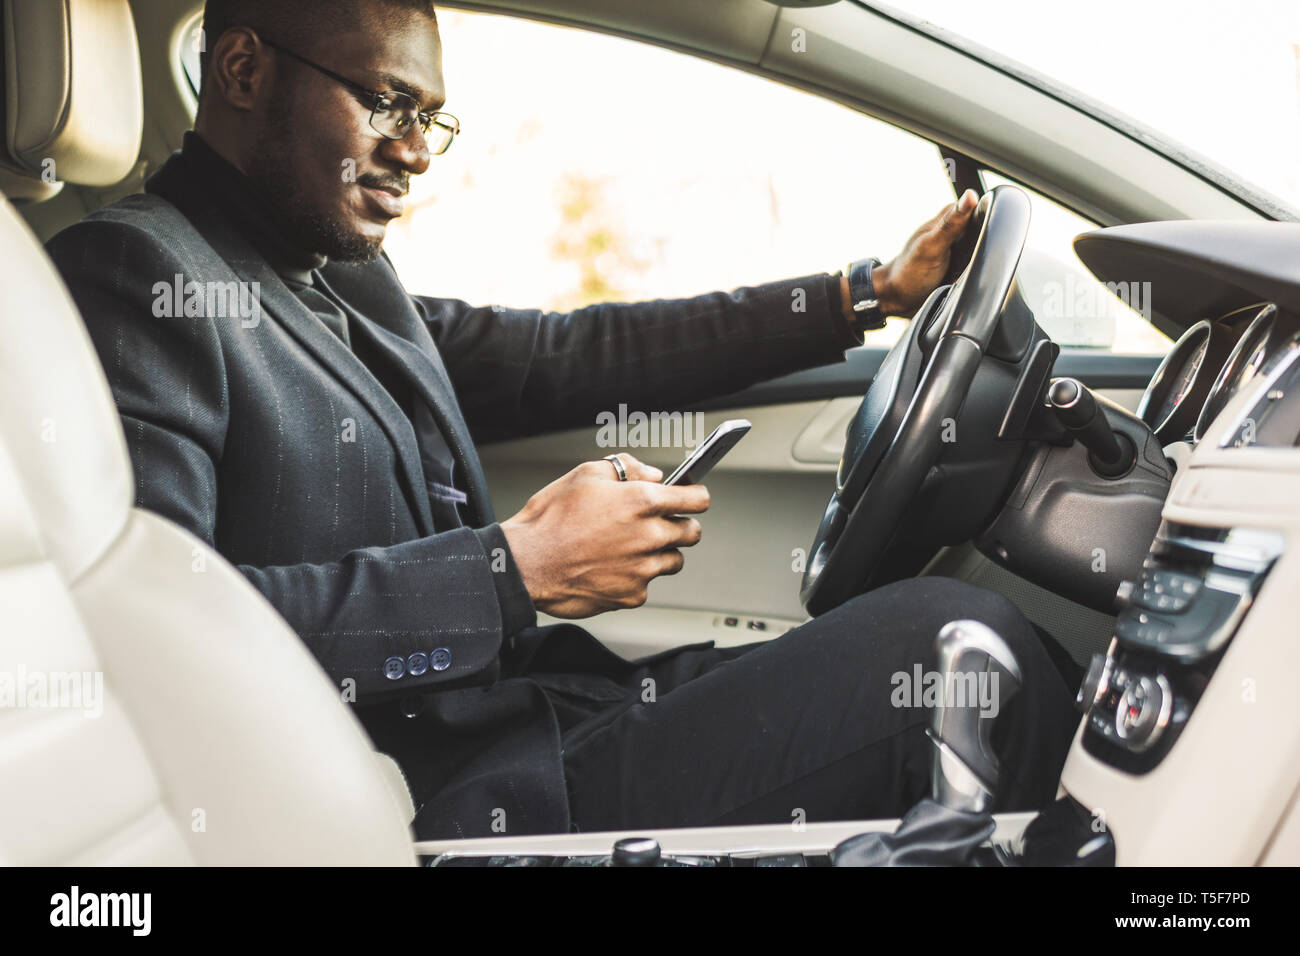 A businessman driving a expensive car holds a mobile phone in his hand. Hasty life. - Stock Image